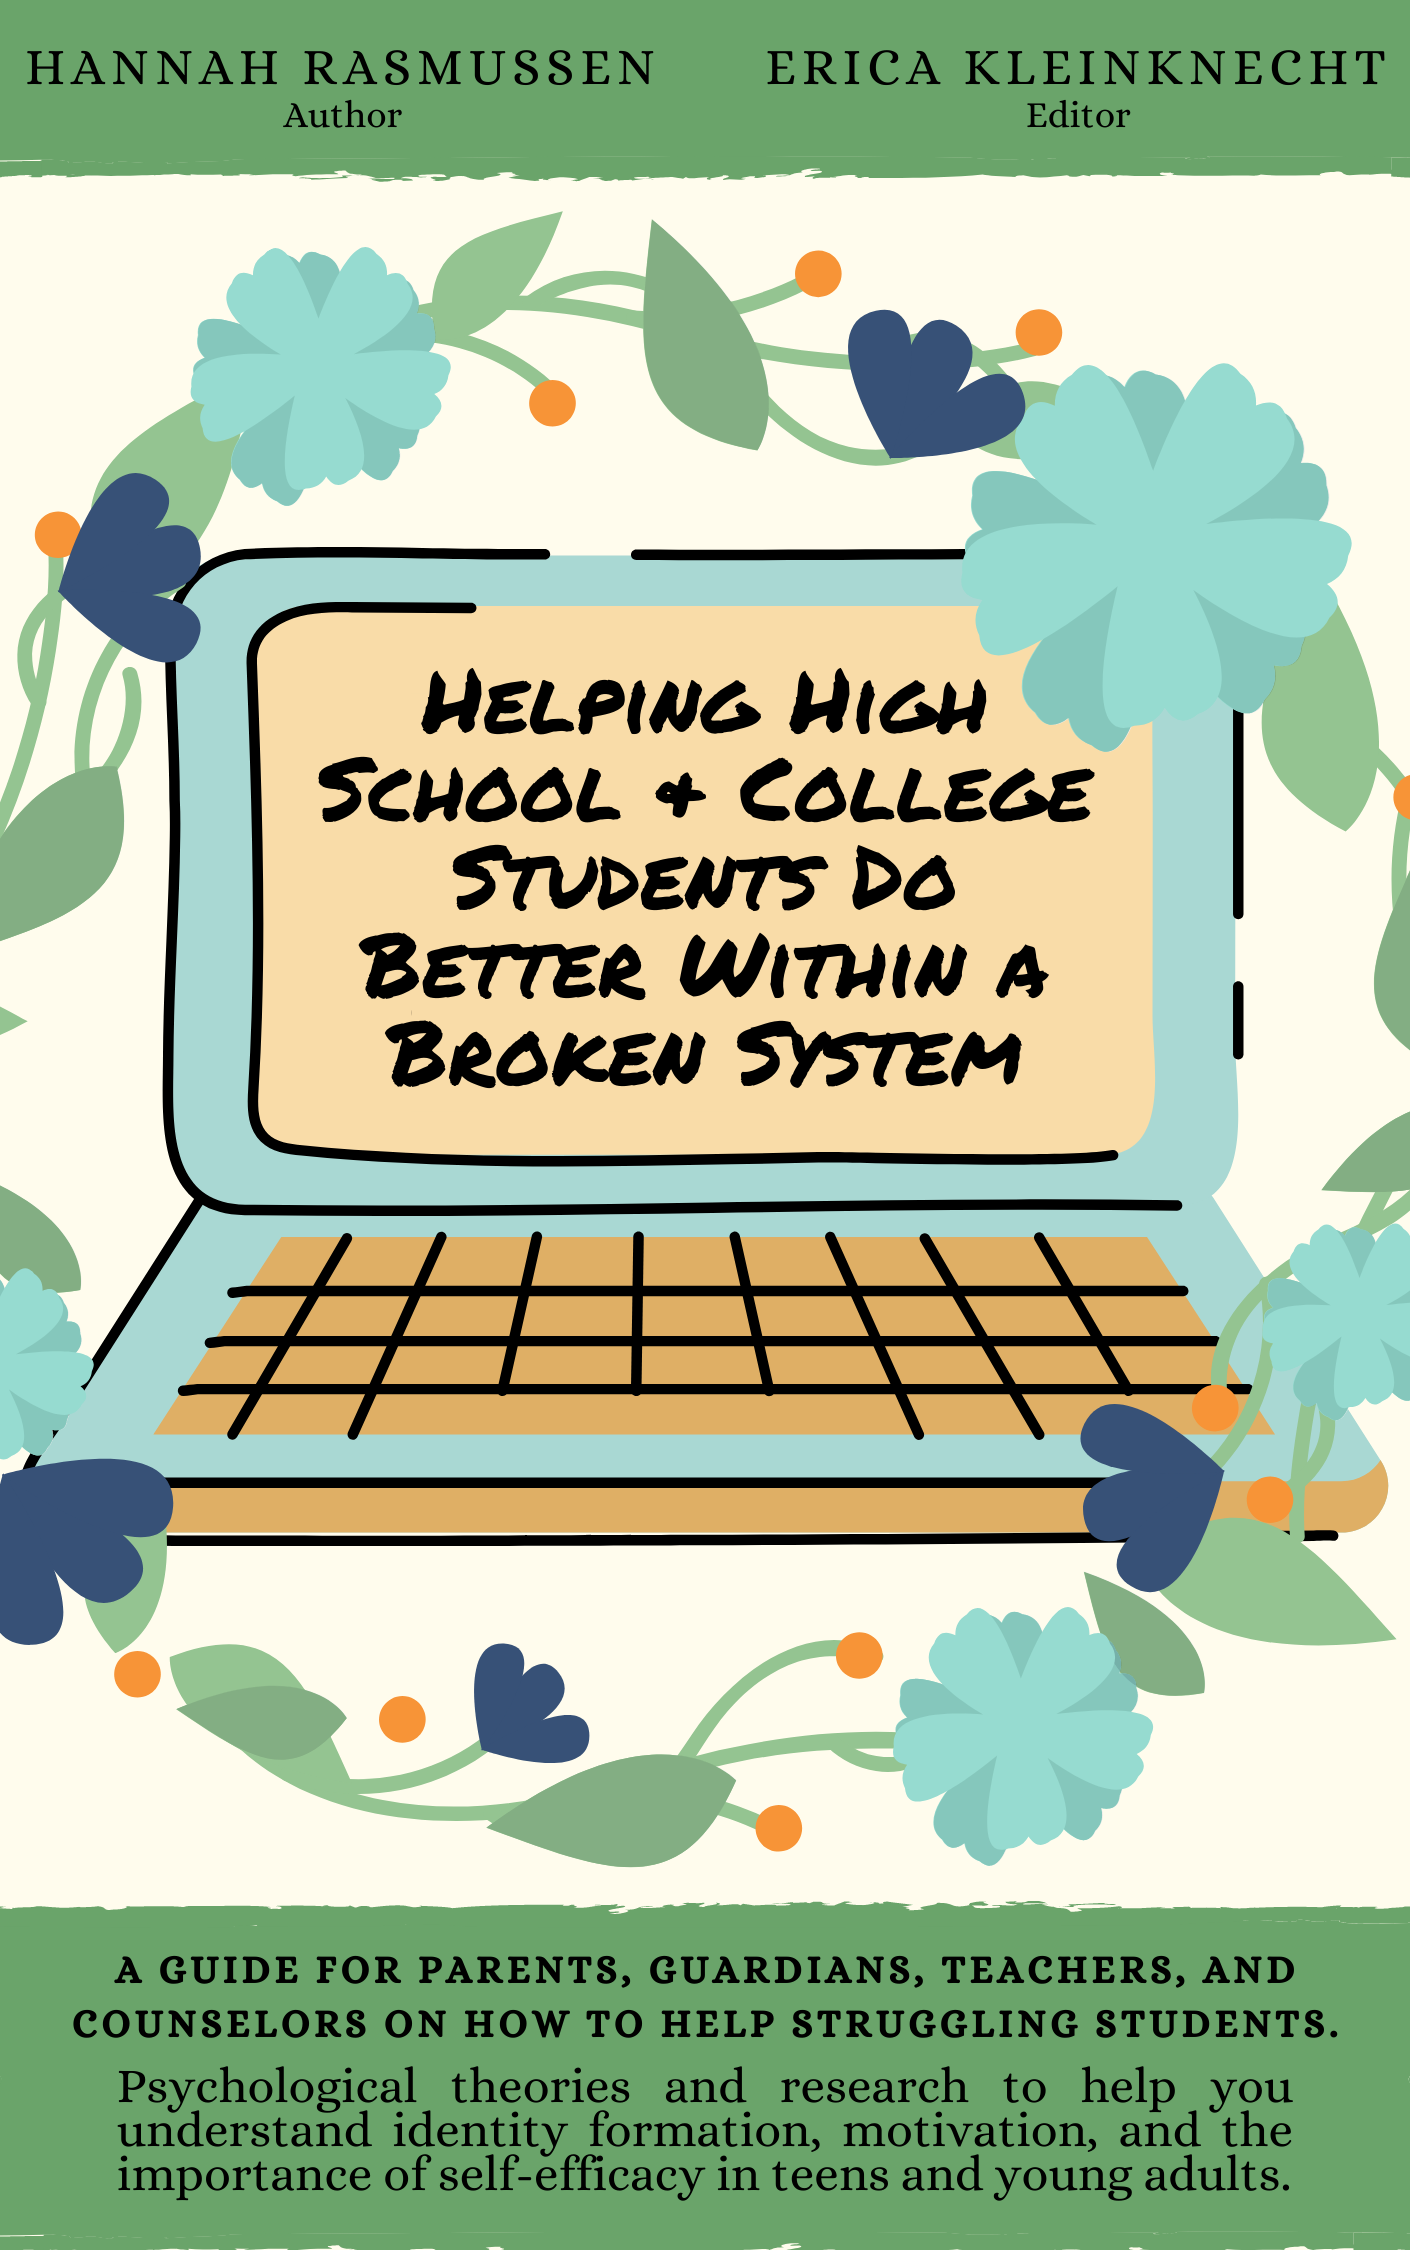 Cover image for Helping High School and College Students Do Better Within a Broken System